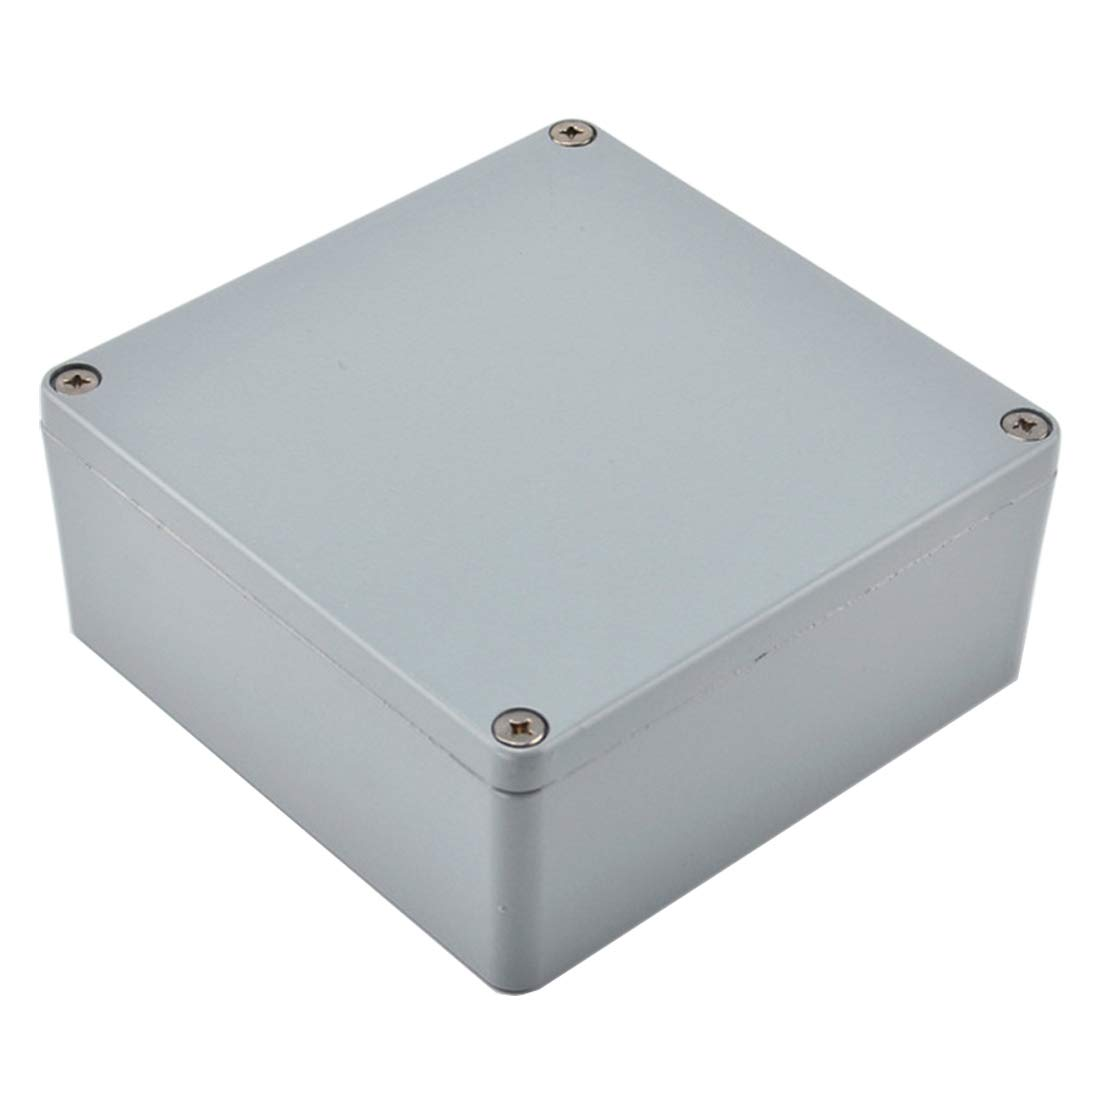 BestTong Aluminum Alloy Metal Small Dustproof Waterproof IP66 Junction Box Universal Extruded Industrial Structure Electrical DIY Project Enclosure Grey 6 x 6 x 2.8 Inches 160mmx160mmx70mm